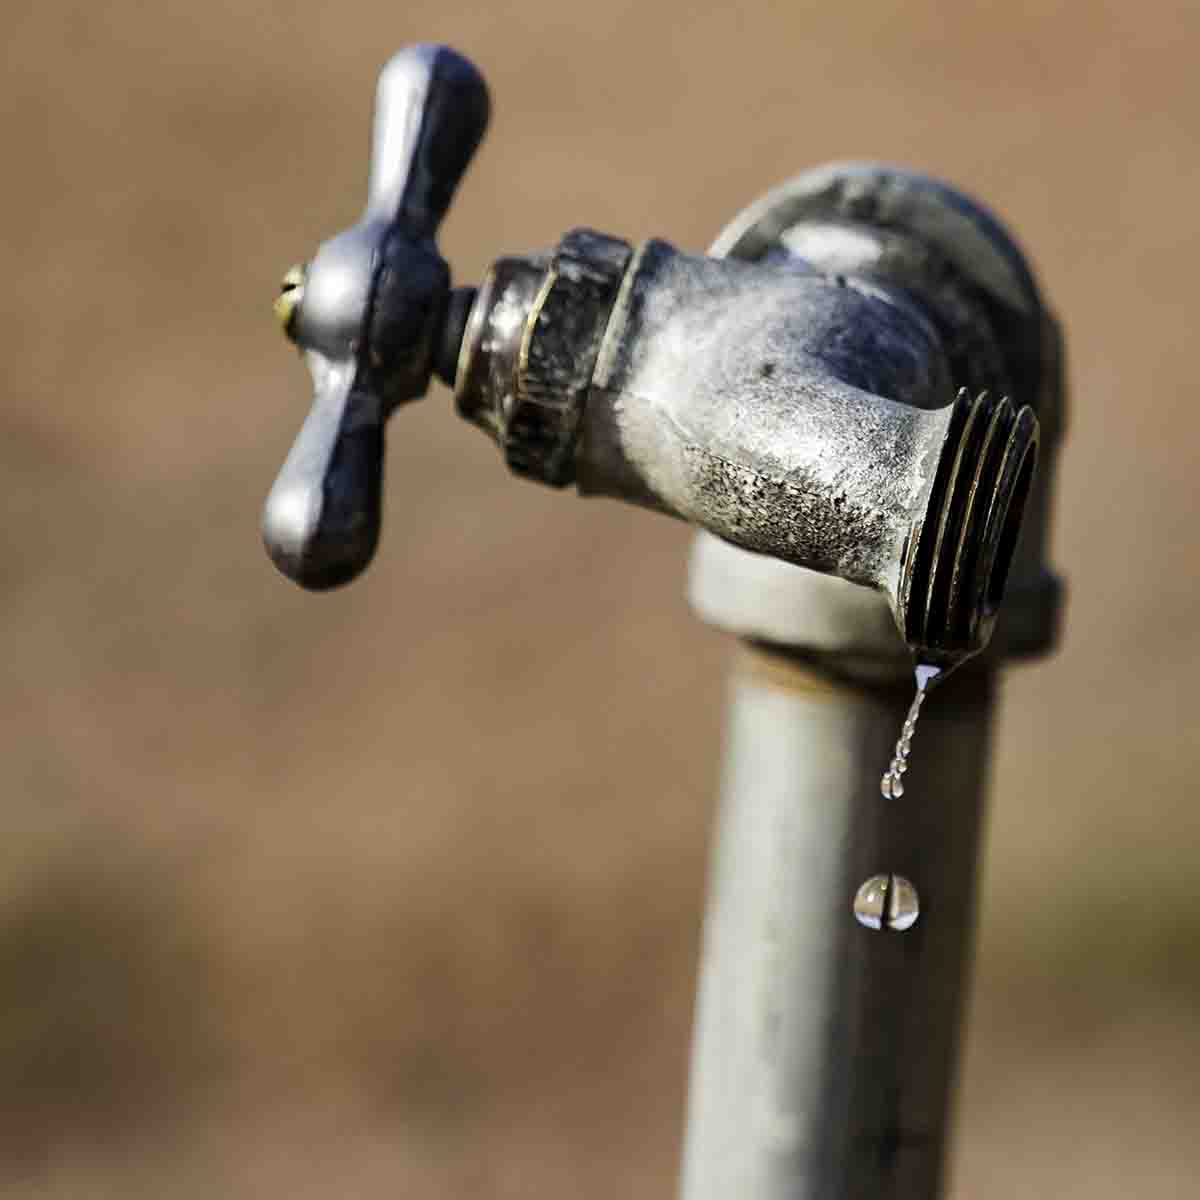 How To Keep Outside Faucet From Freezing - Ask the Plumber Blog